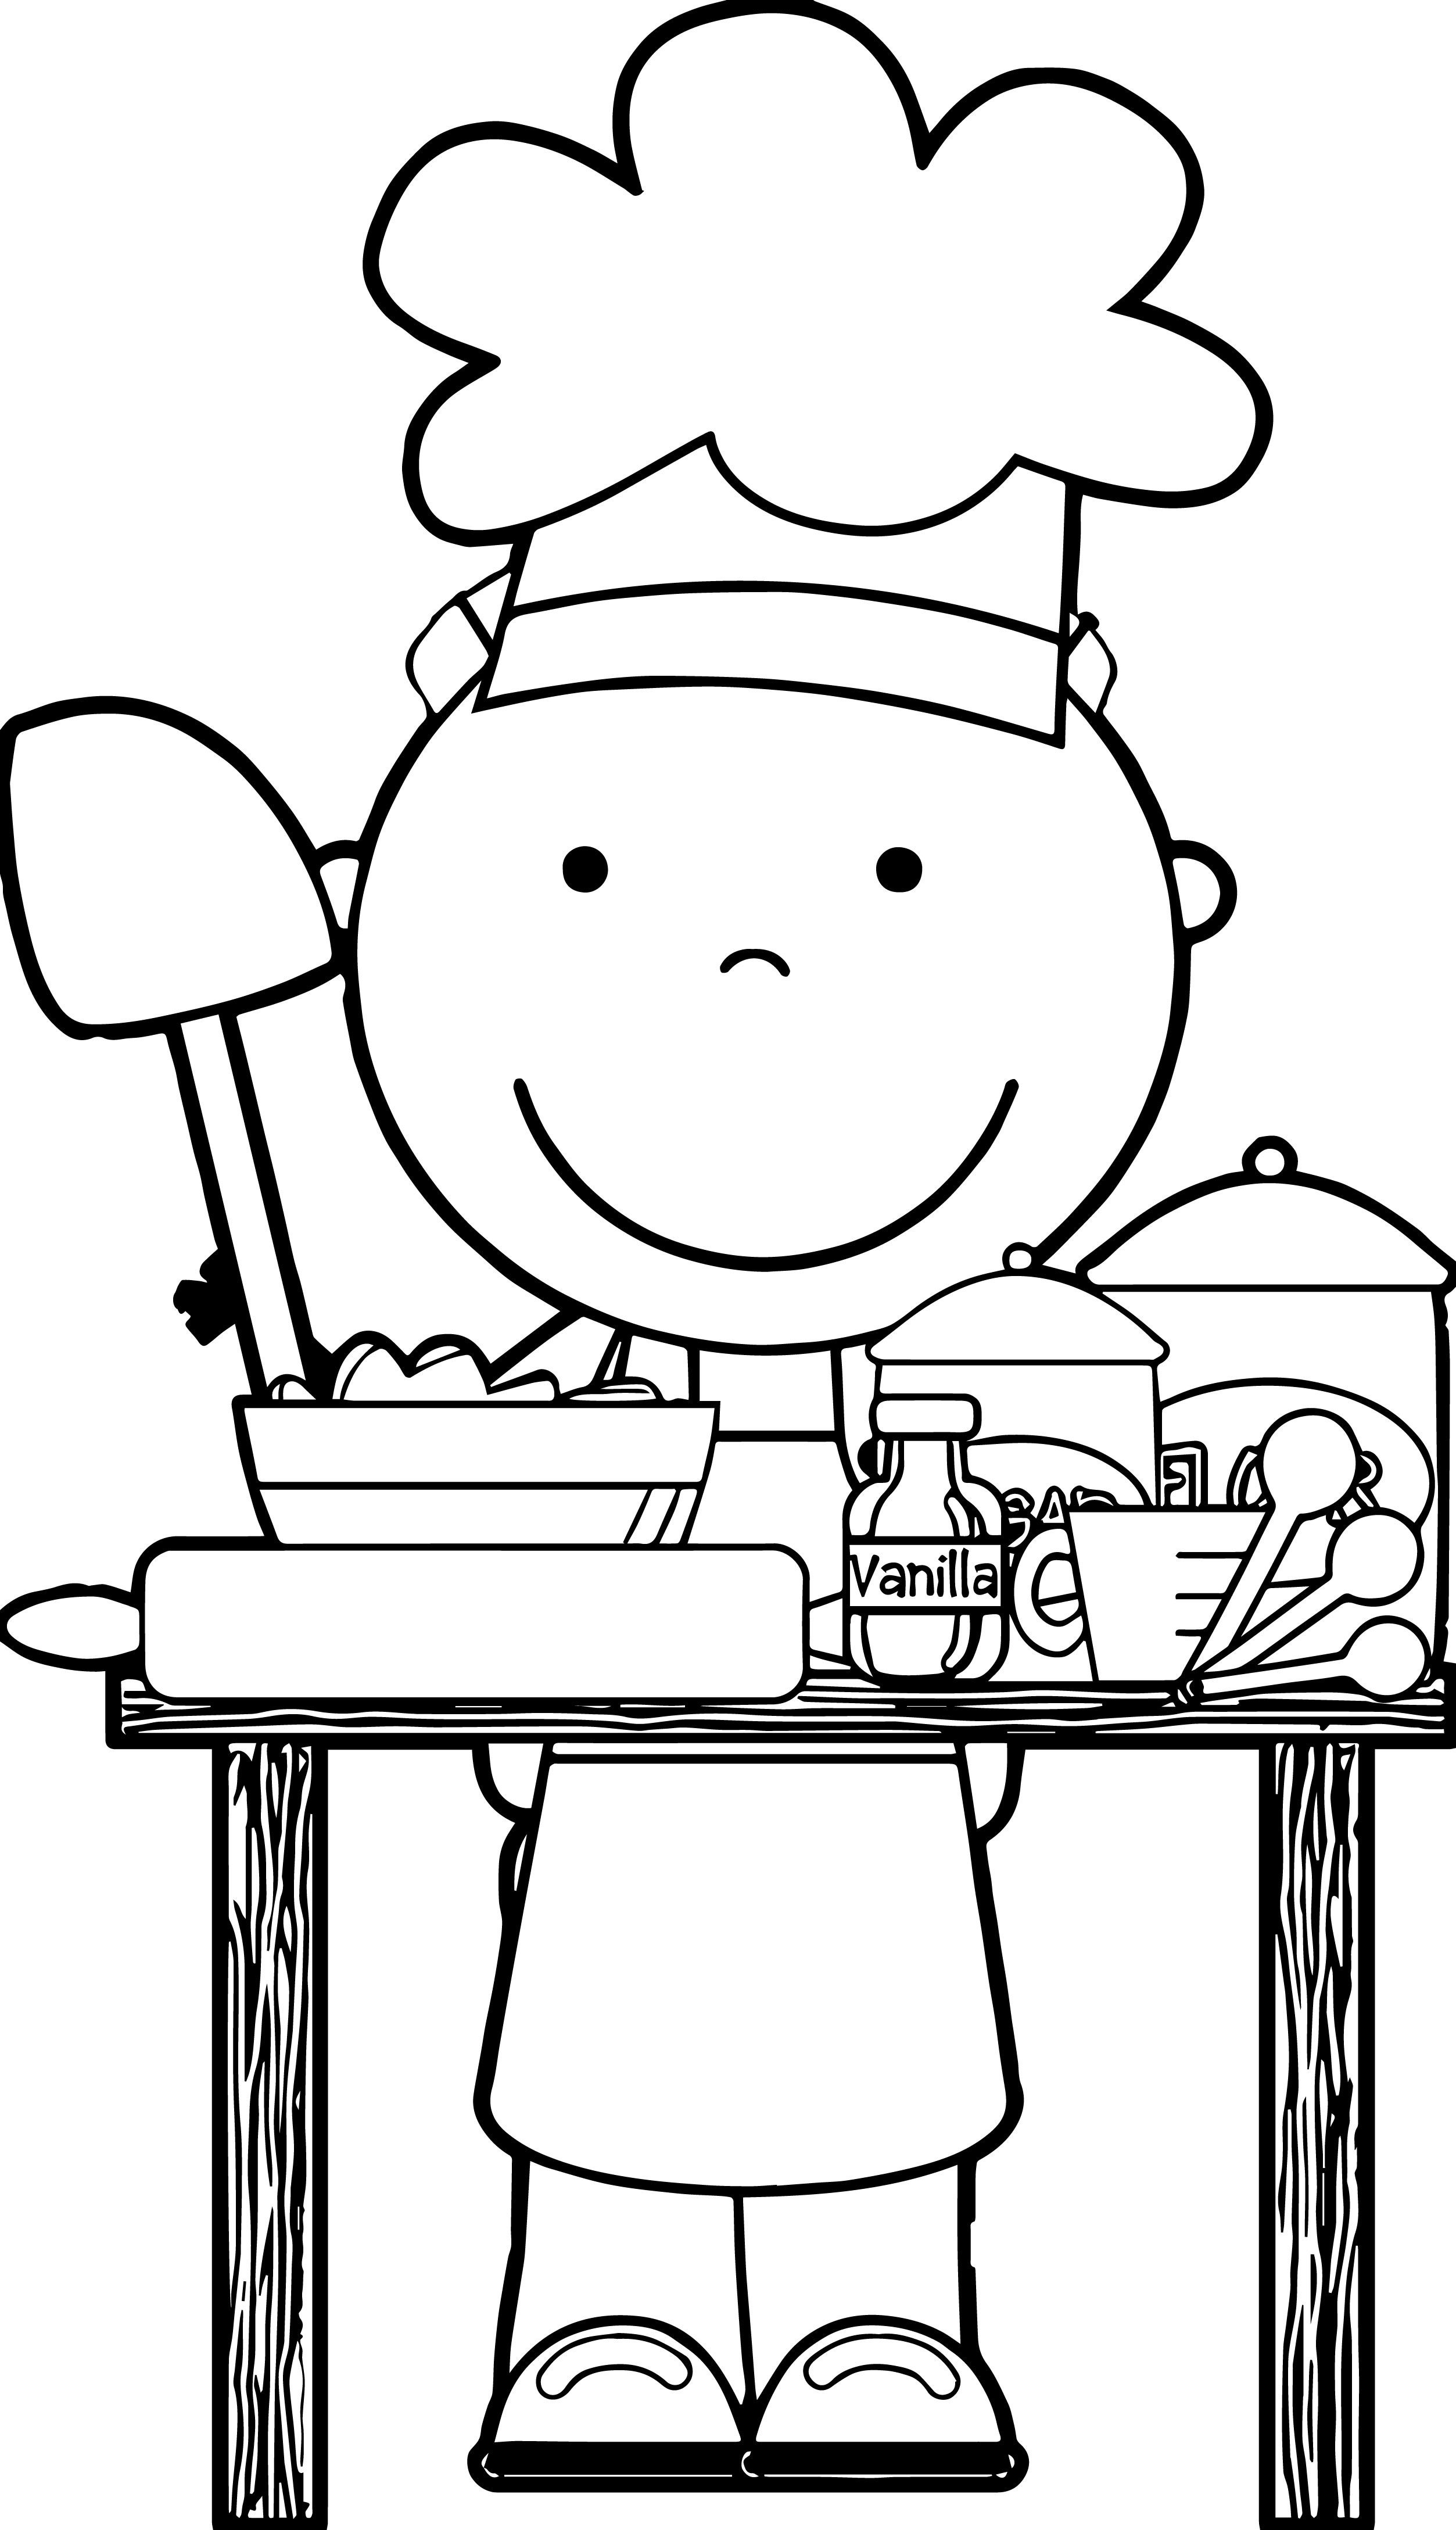 chef coloring page the muppets coloring pages 2 disneyclipscom coloring chef page